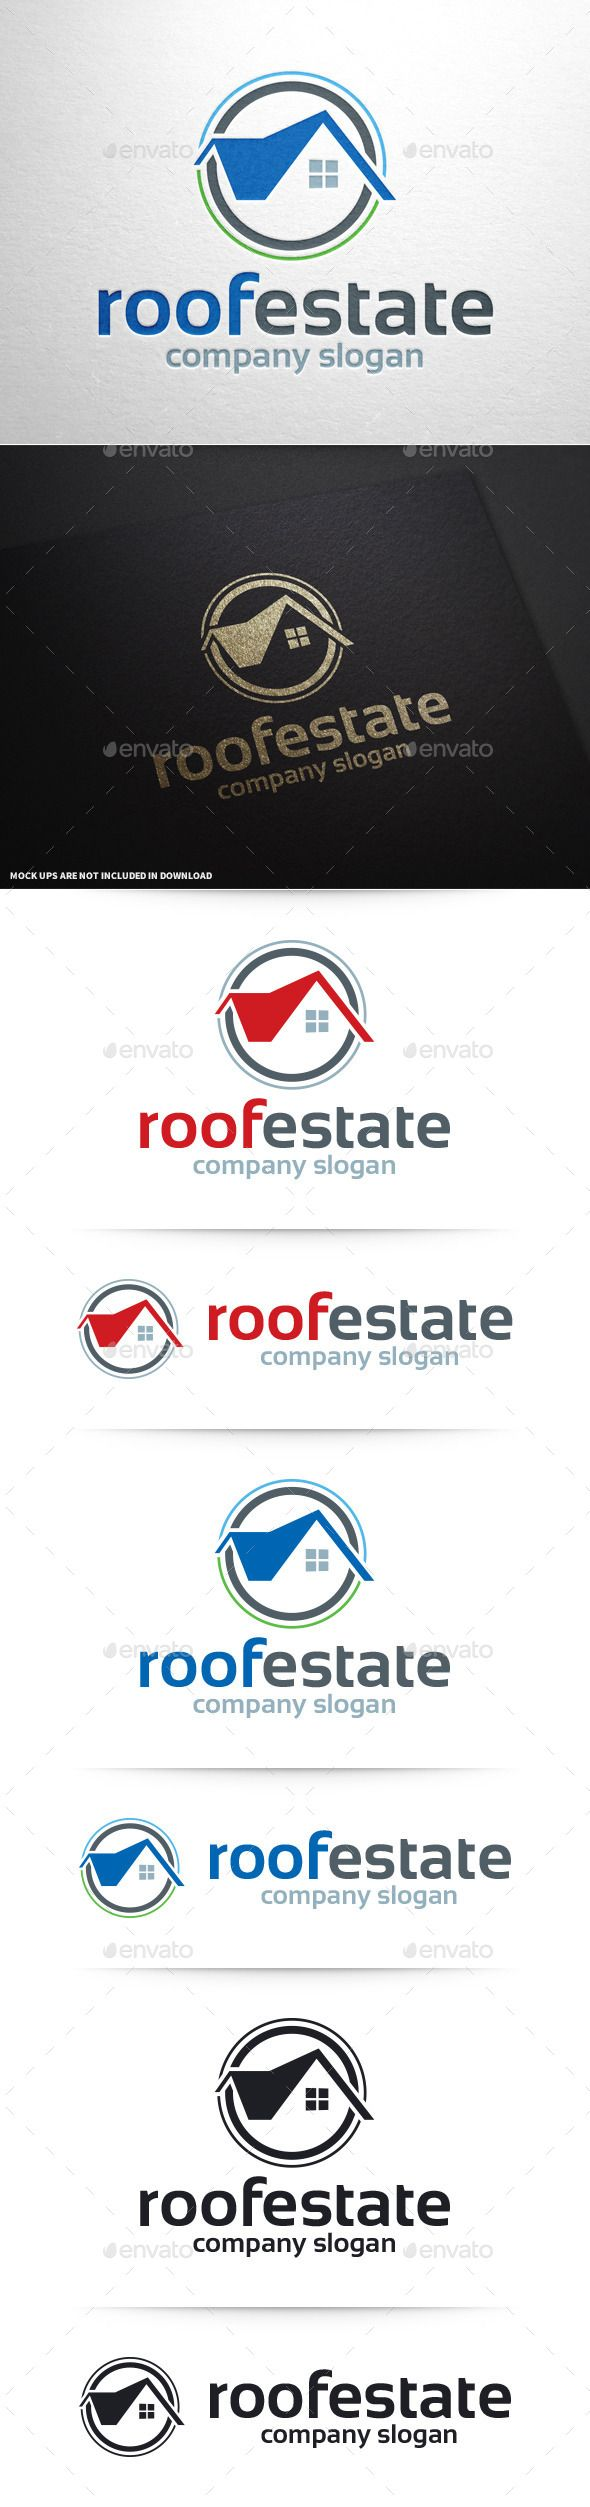 Roof Estate Logo Design Template Vector #logotype Download it here:  http://graphicriver.net/item/roof-estate-logo-template/10390400?s_rank=988?ref=nexion